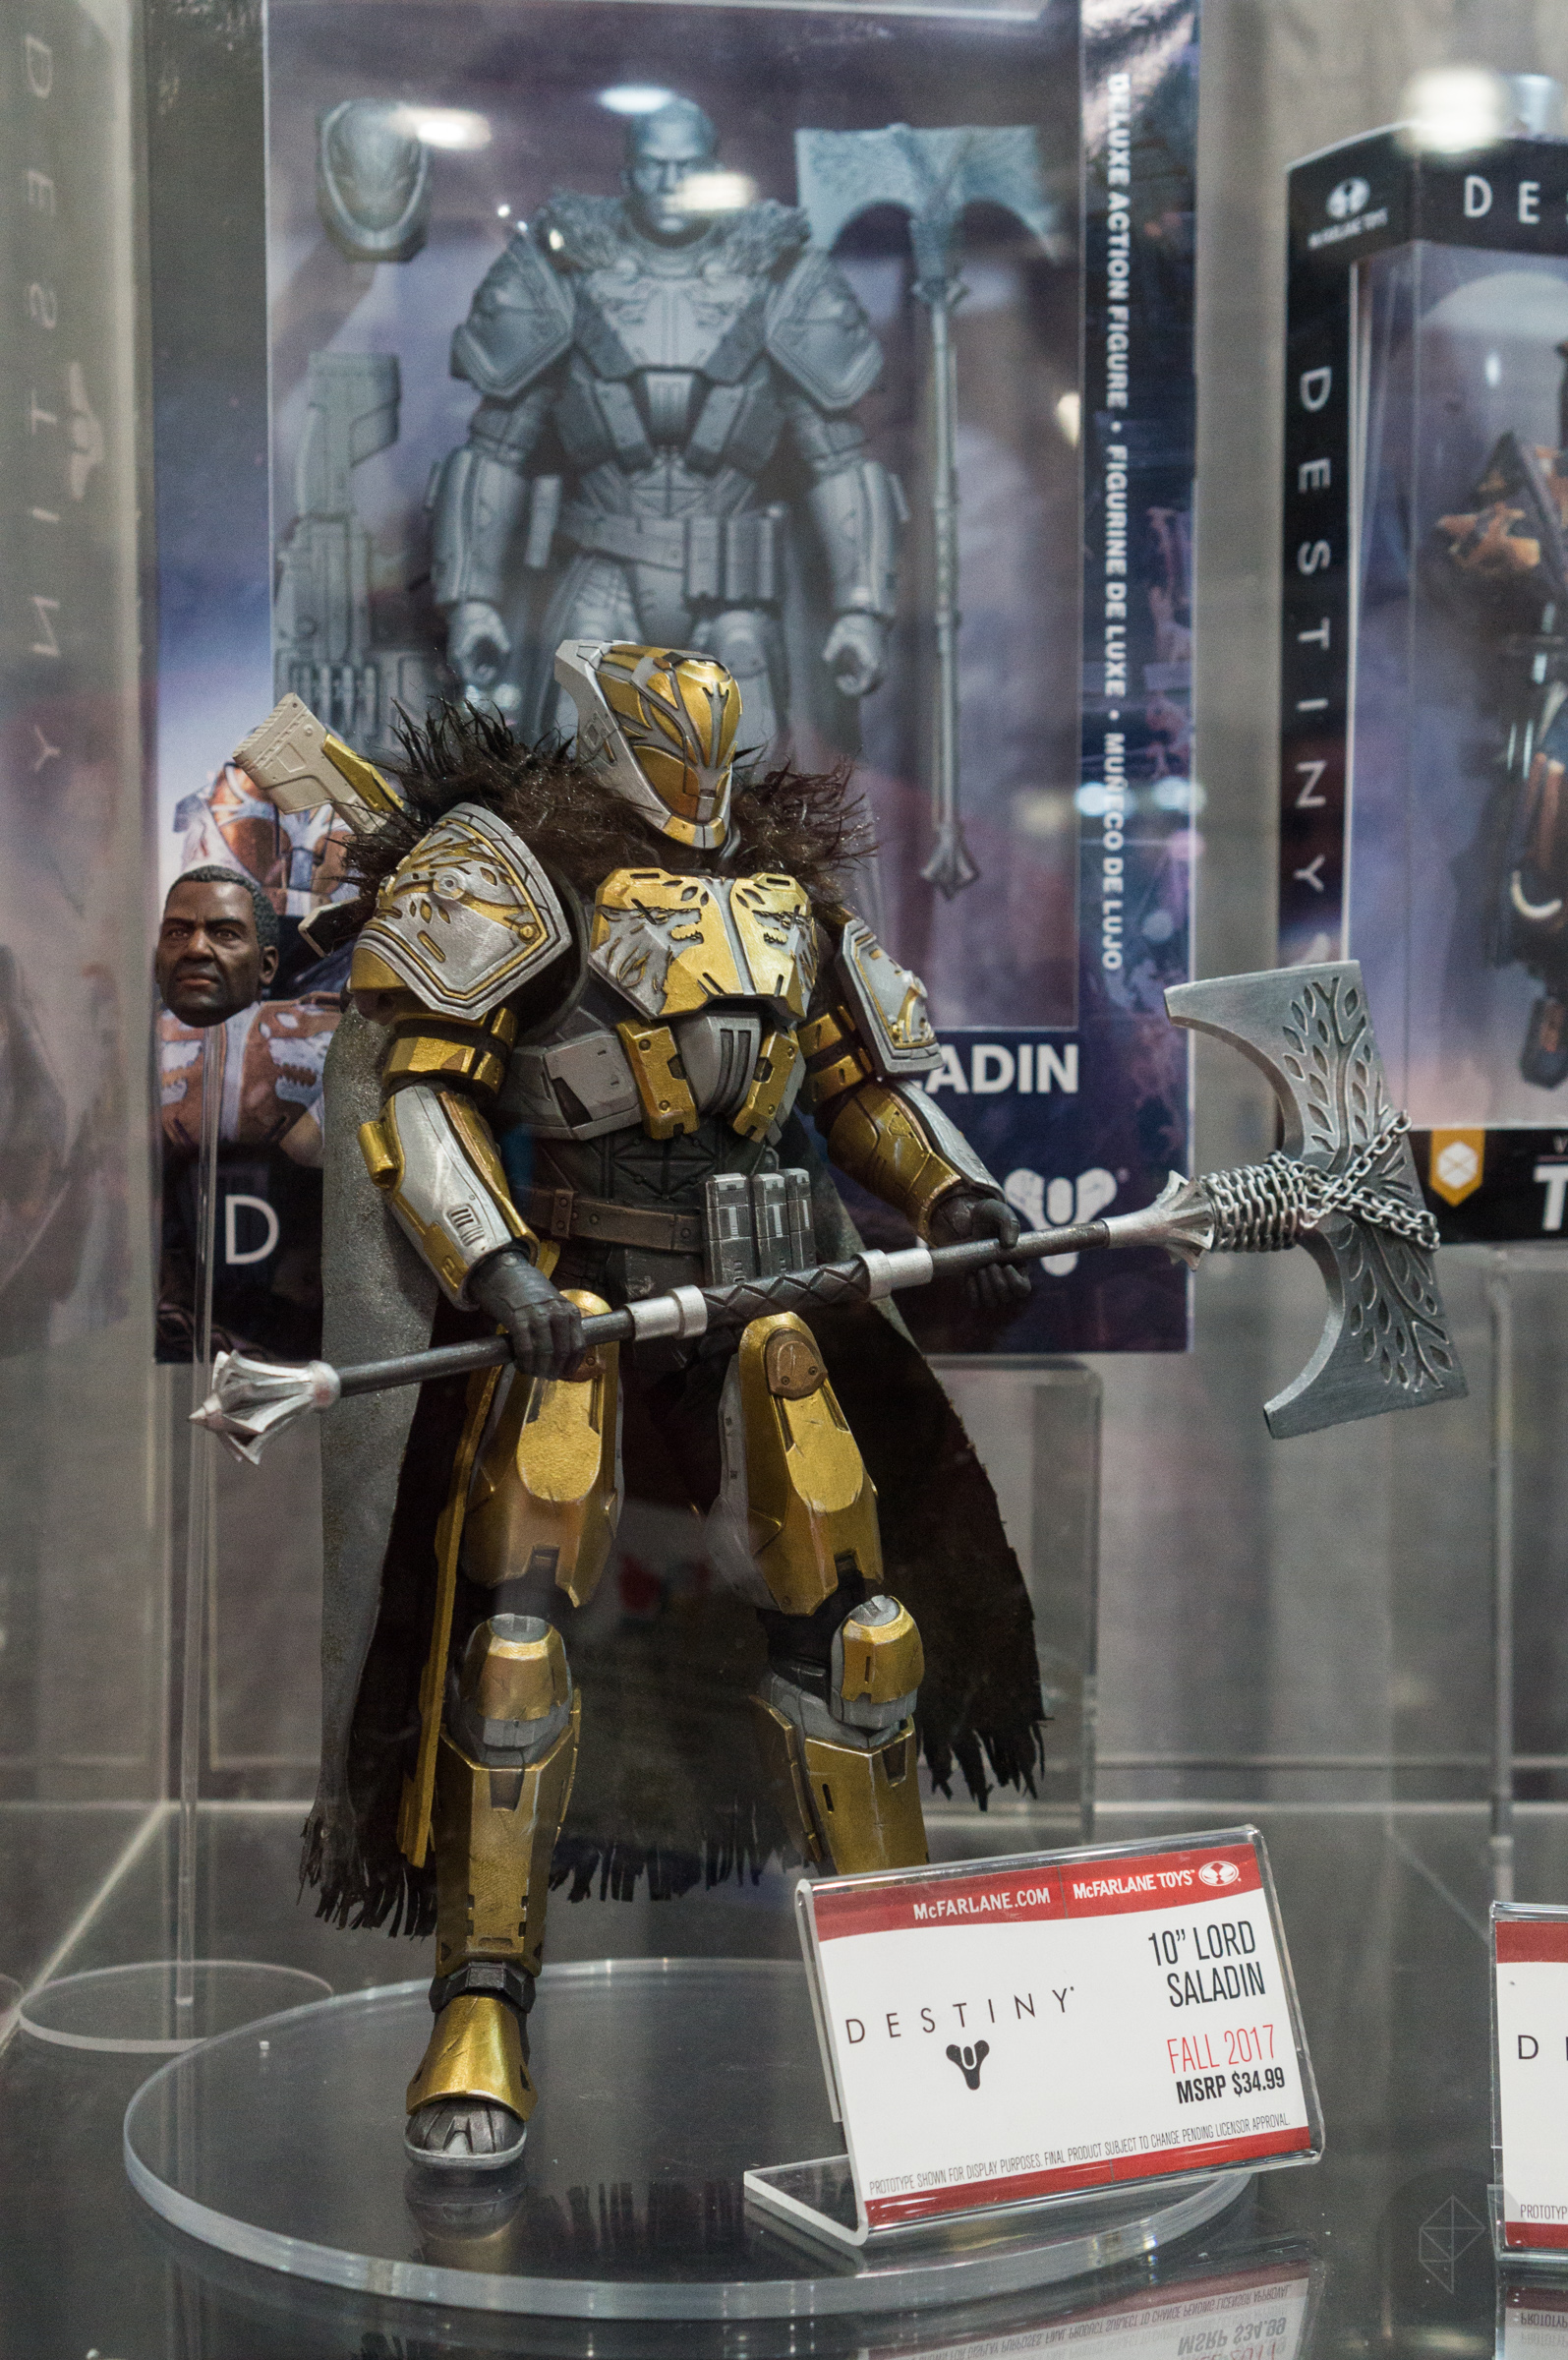 Destiny is finally getting great action figures you can ...